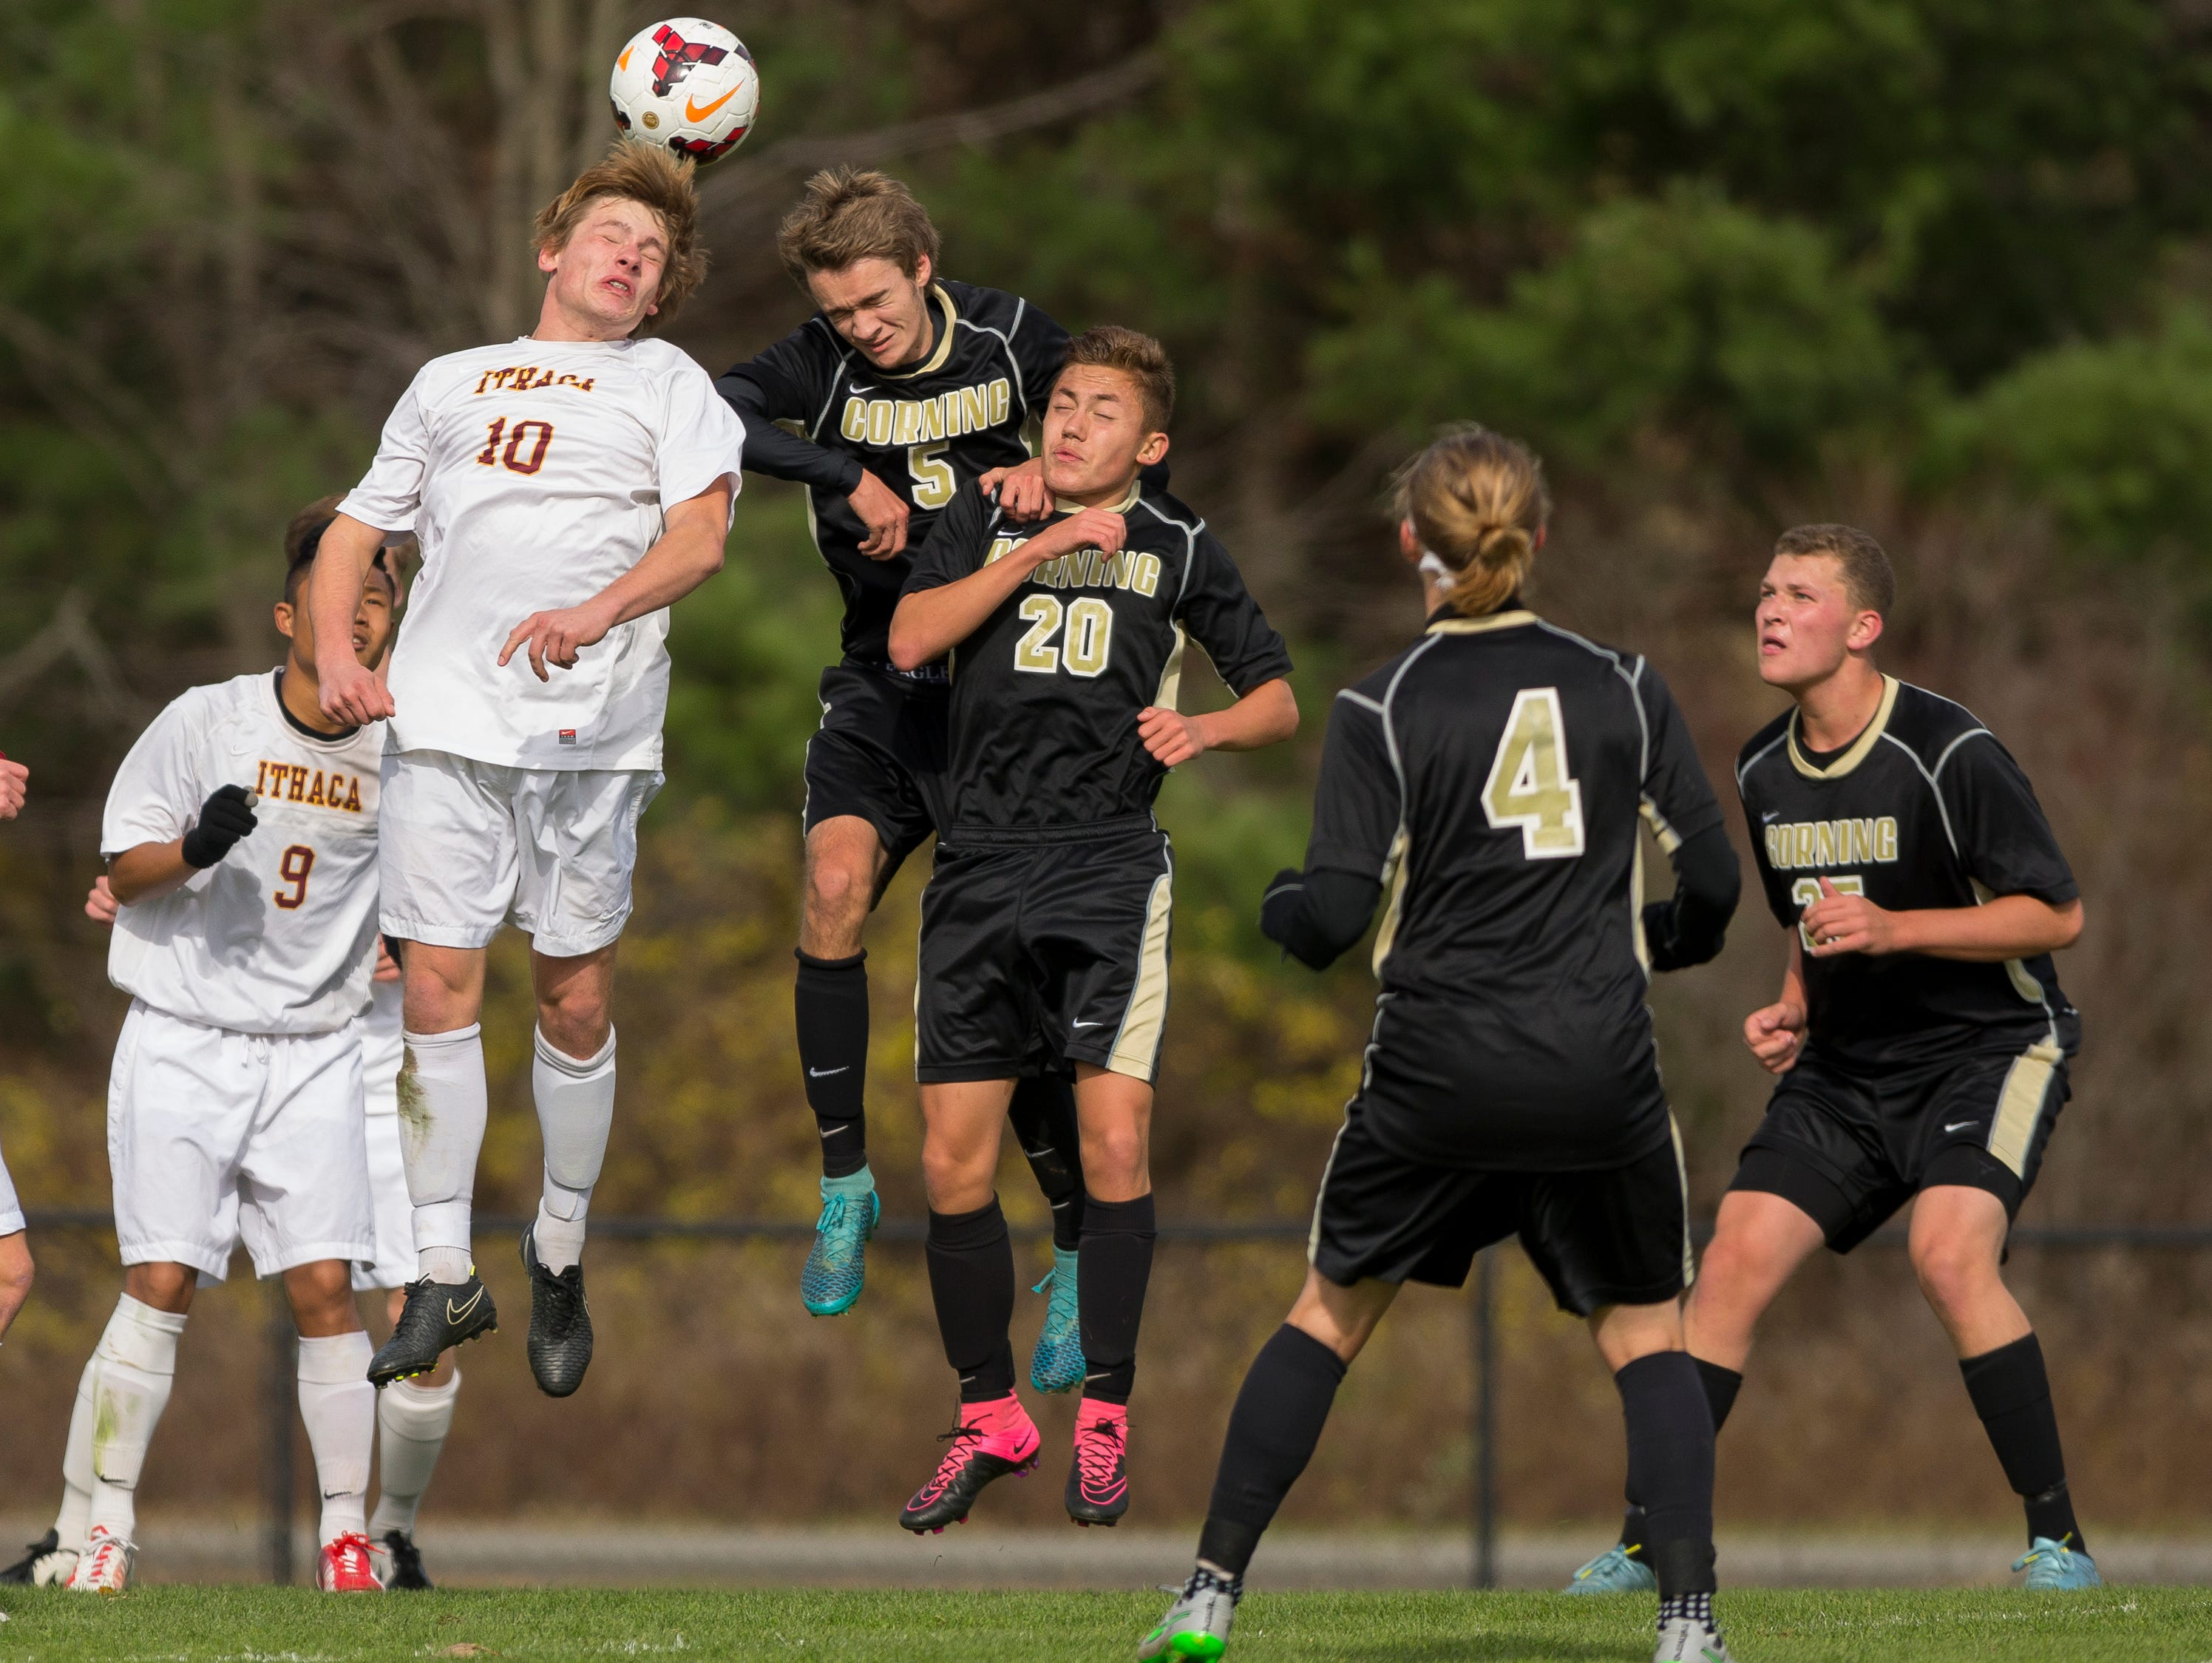 From left, Ithaca's Phyo Zay Htet, watches as Jared Brooks, and Corning's Trevor Kohli and Connor Lin battle for a ball Saturday during Ithaca's 2-0 win in the Section IV Class AA game in Oneonta.